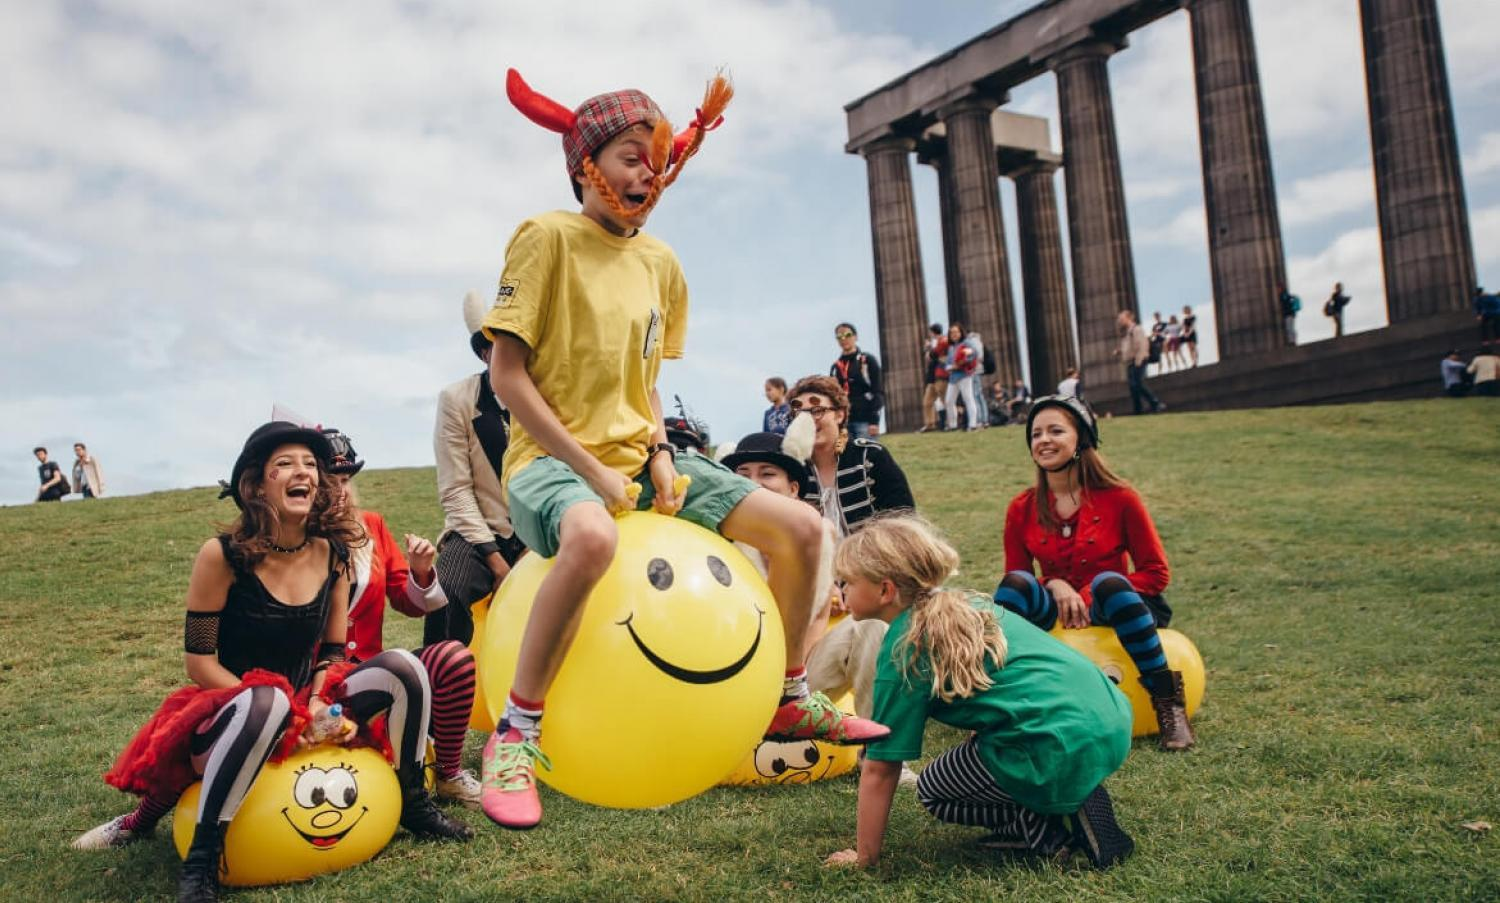 Children's activities on Calton Hill during the Edinburgh Festival Fringe.